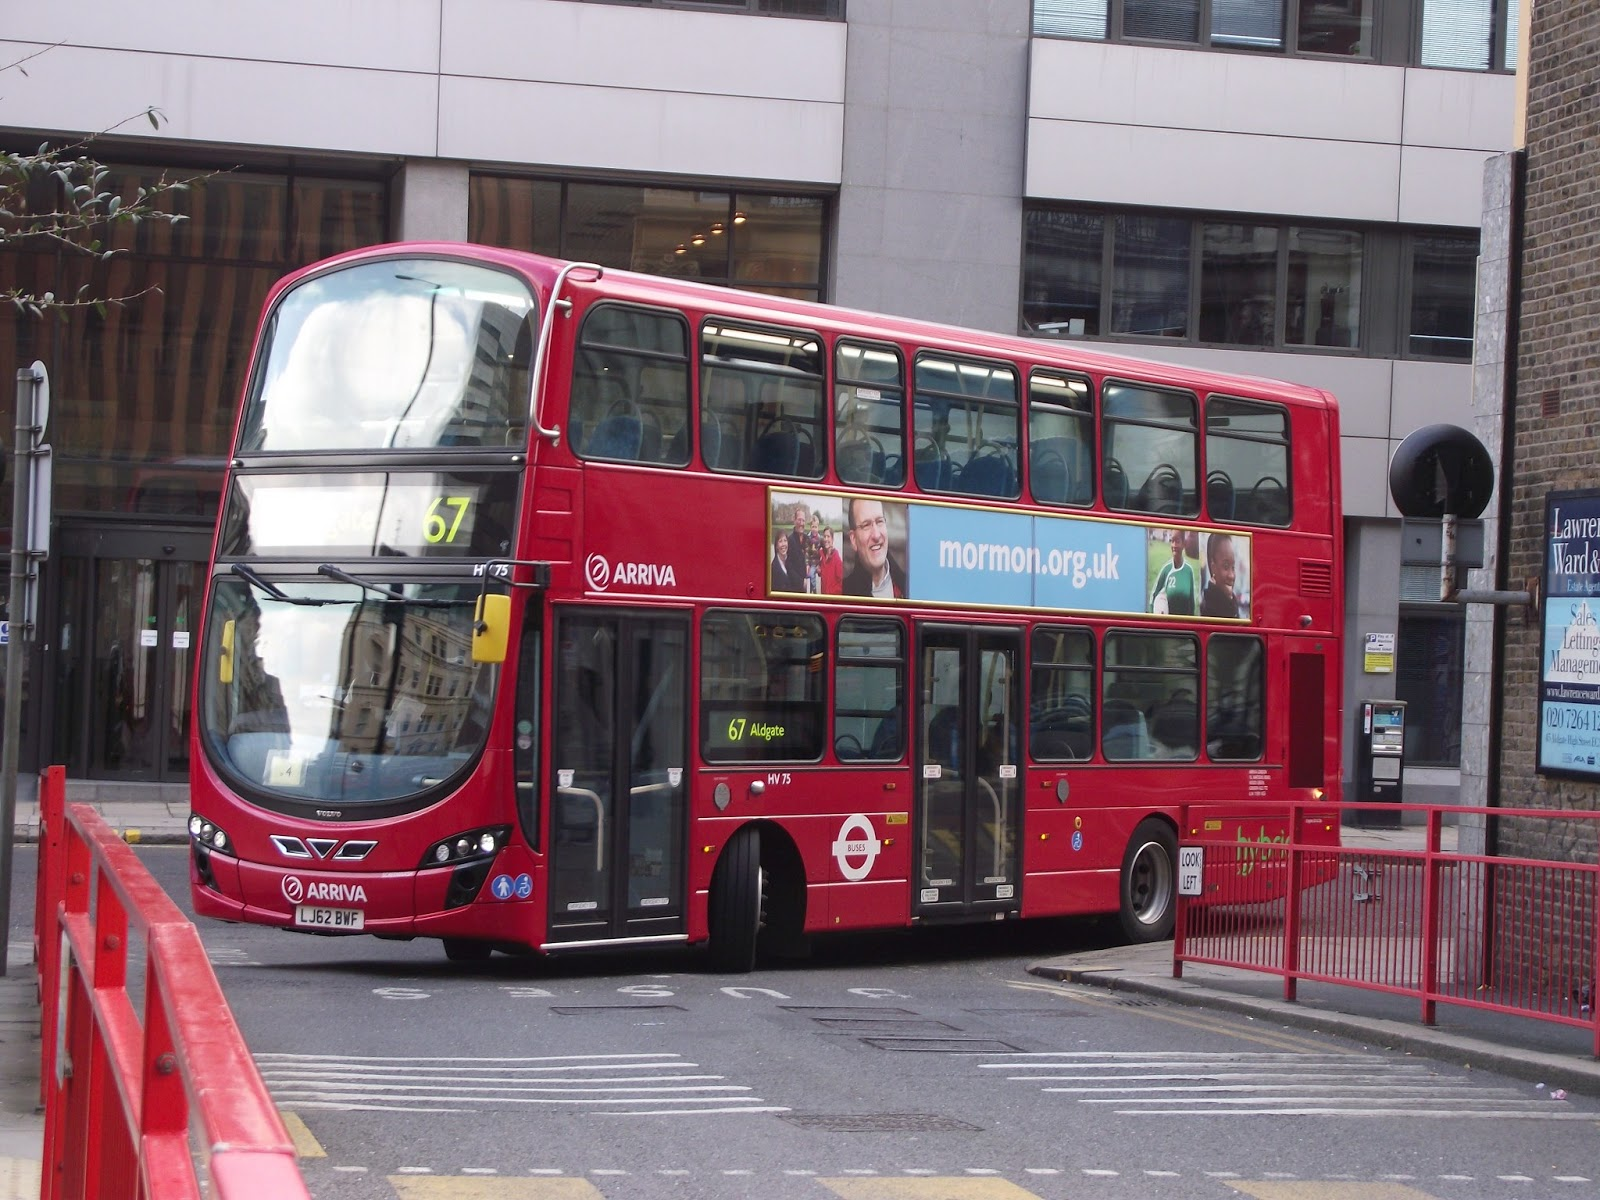 Tom London & Surrey Bus Blog: Route 67 Observations